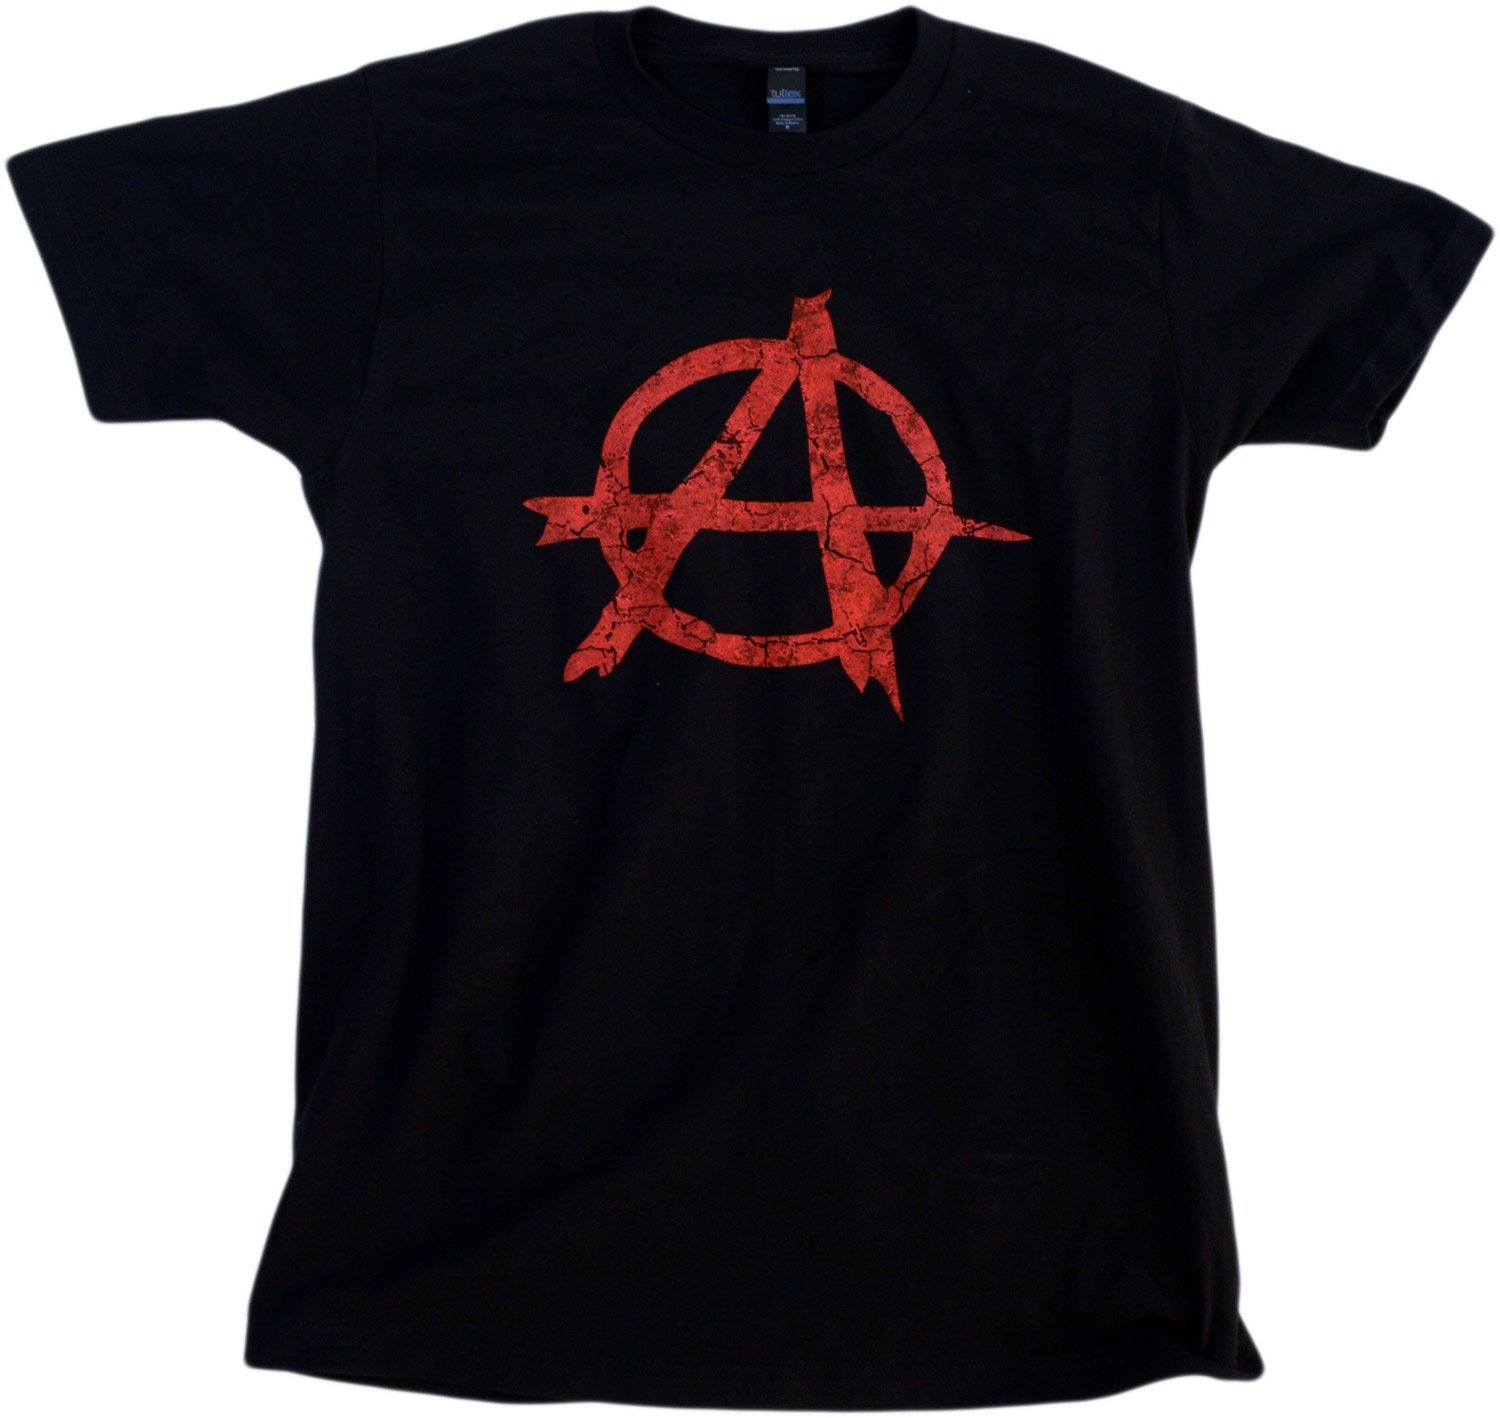 Anarchy symbol design